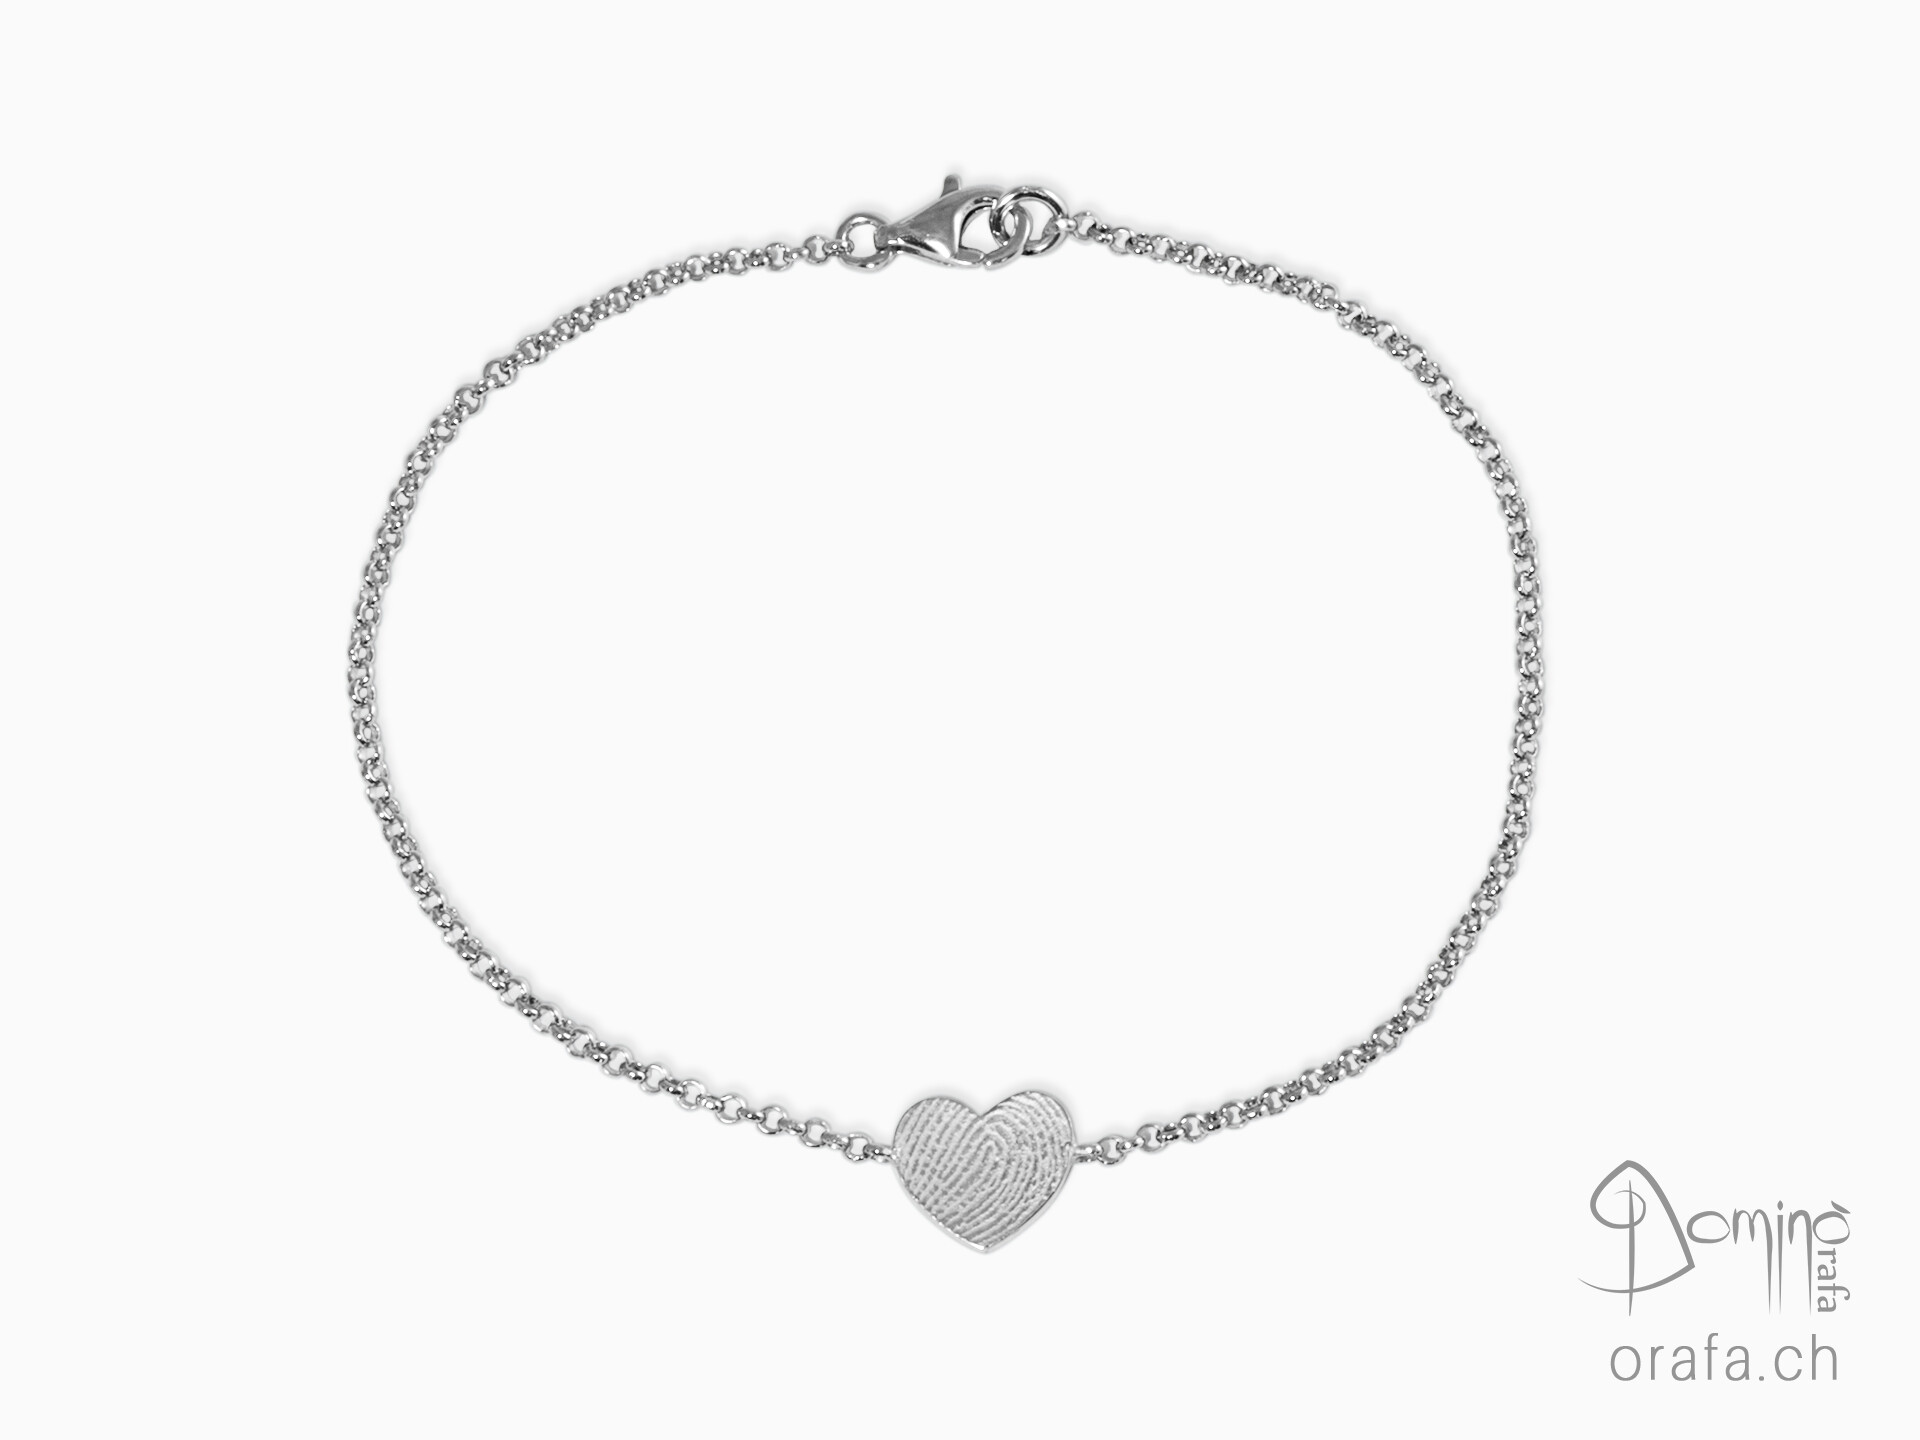 Heart bracelet with fingerprint